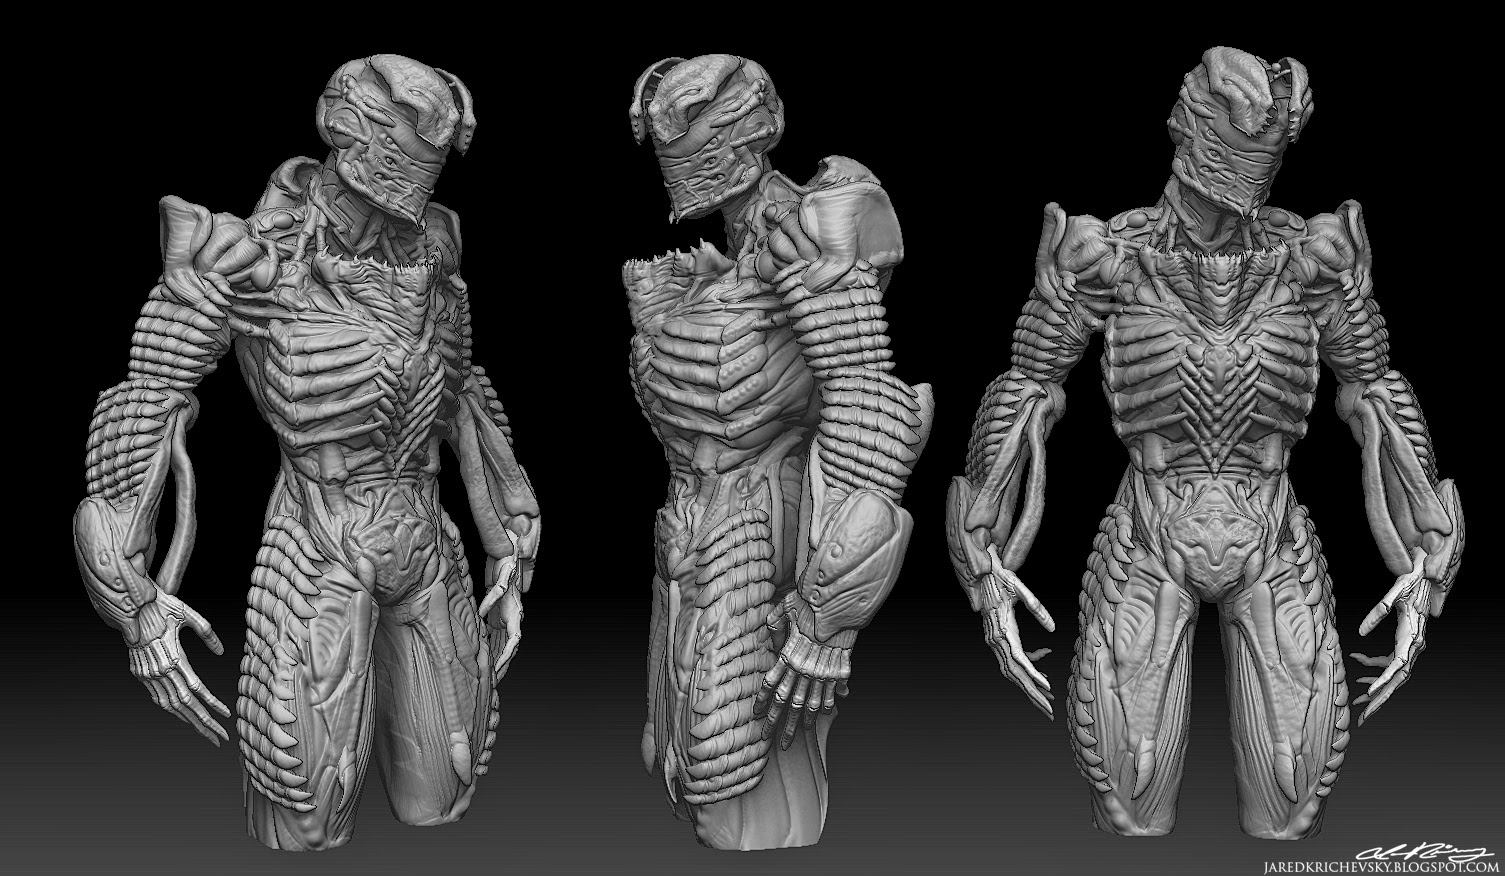 jared krichevsky 2015 organic bio suit isaac from dead space done for the facebook group brainstorm